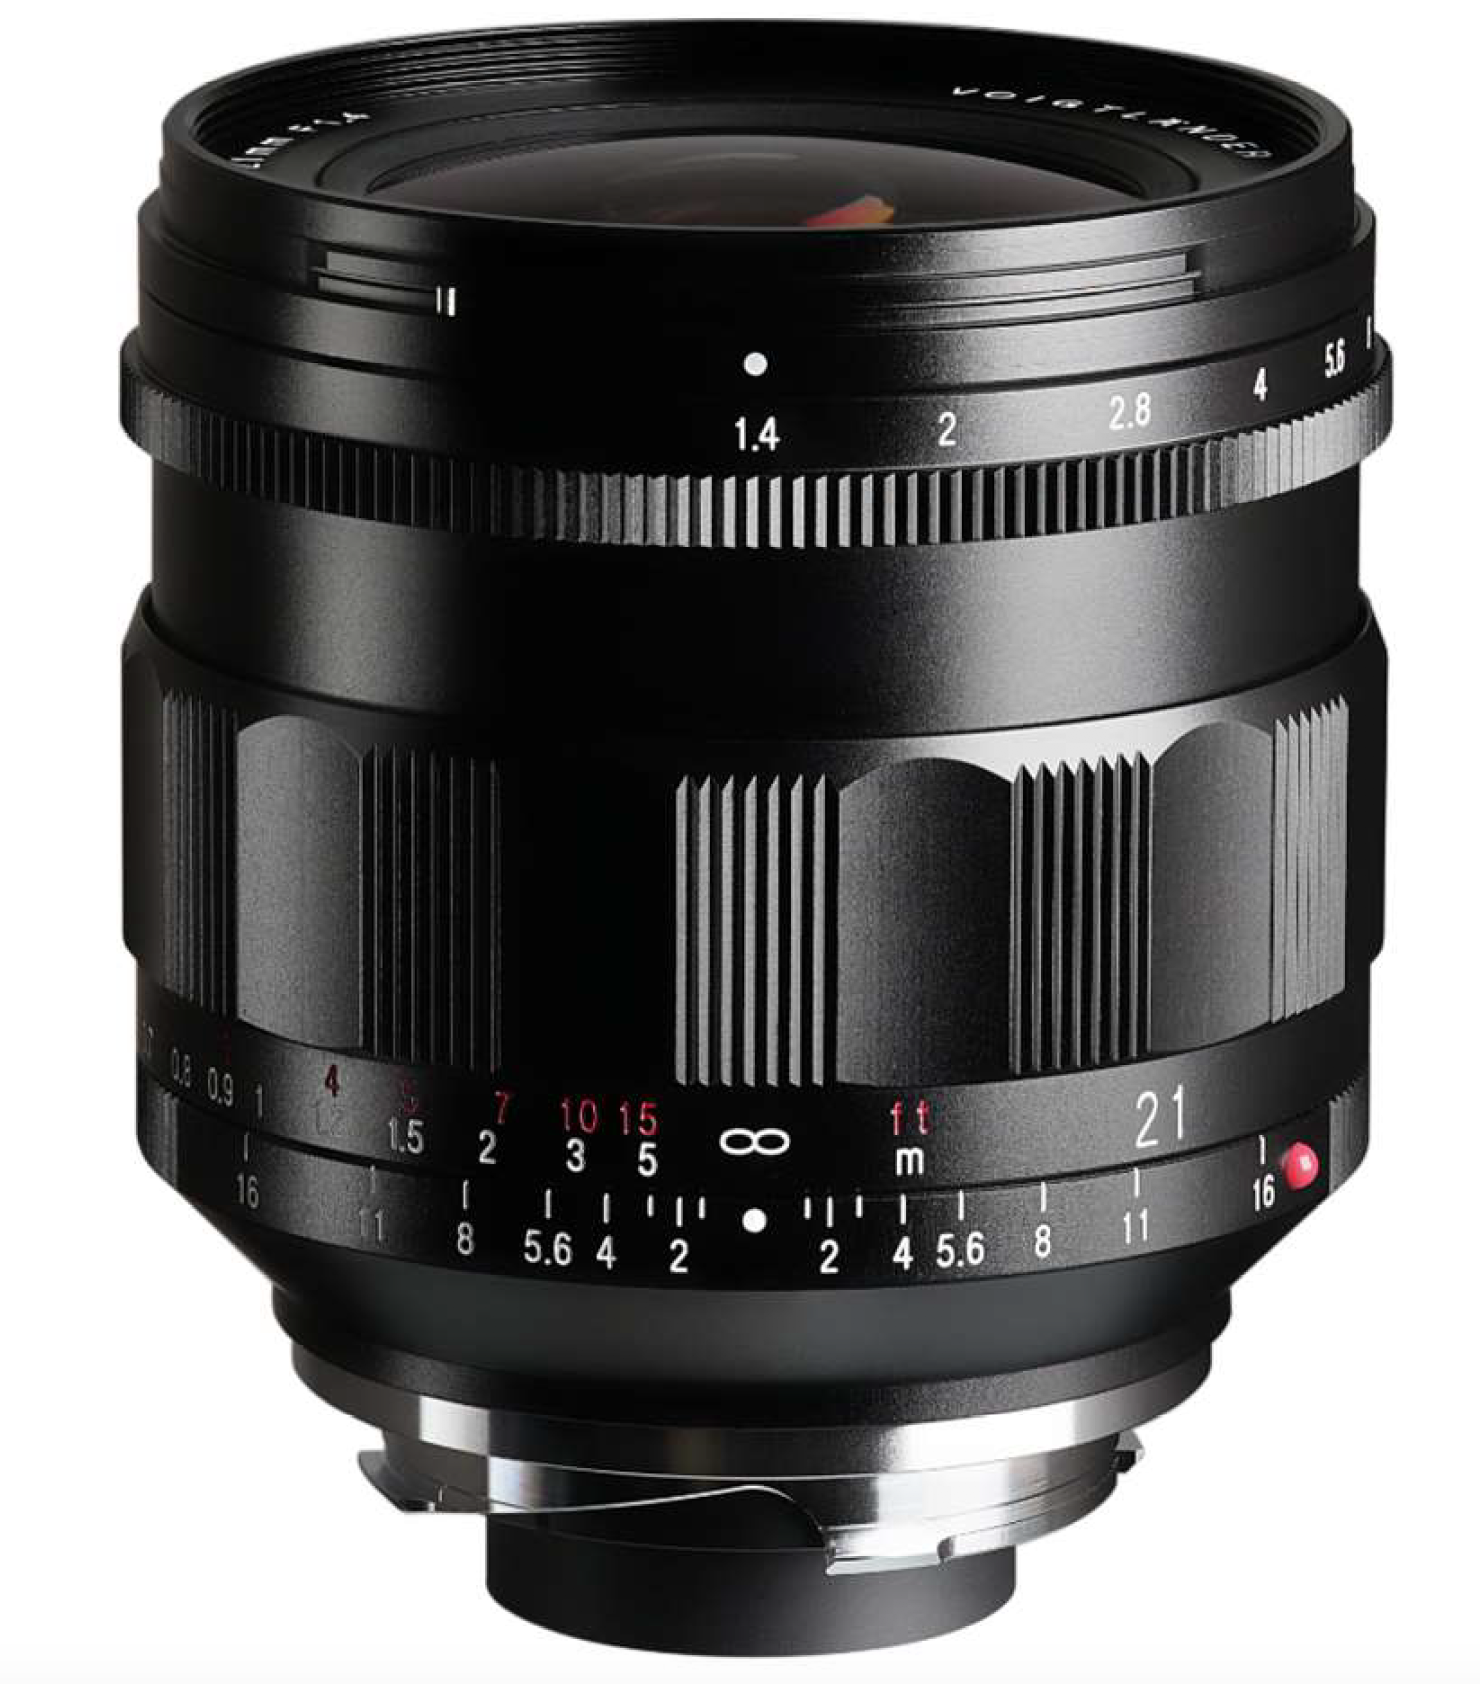 Voigtlander 21mm f1.4 ASPHERICAL Nokton for Leica M camera's (VM)